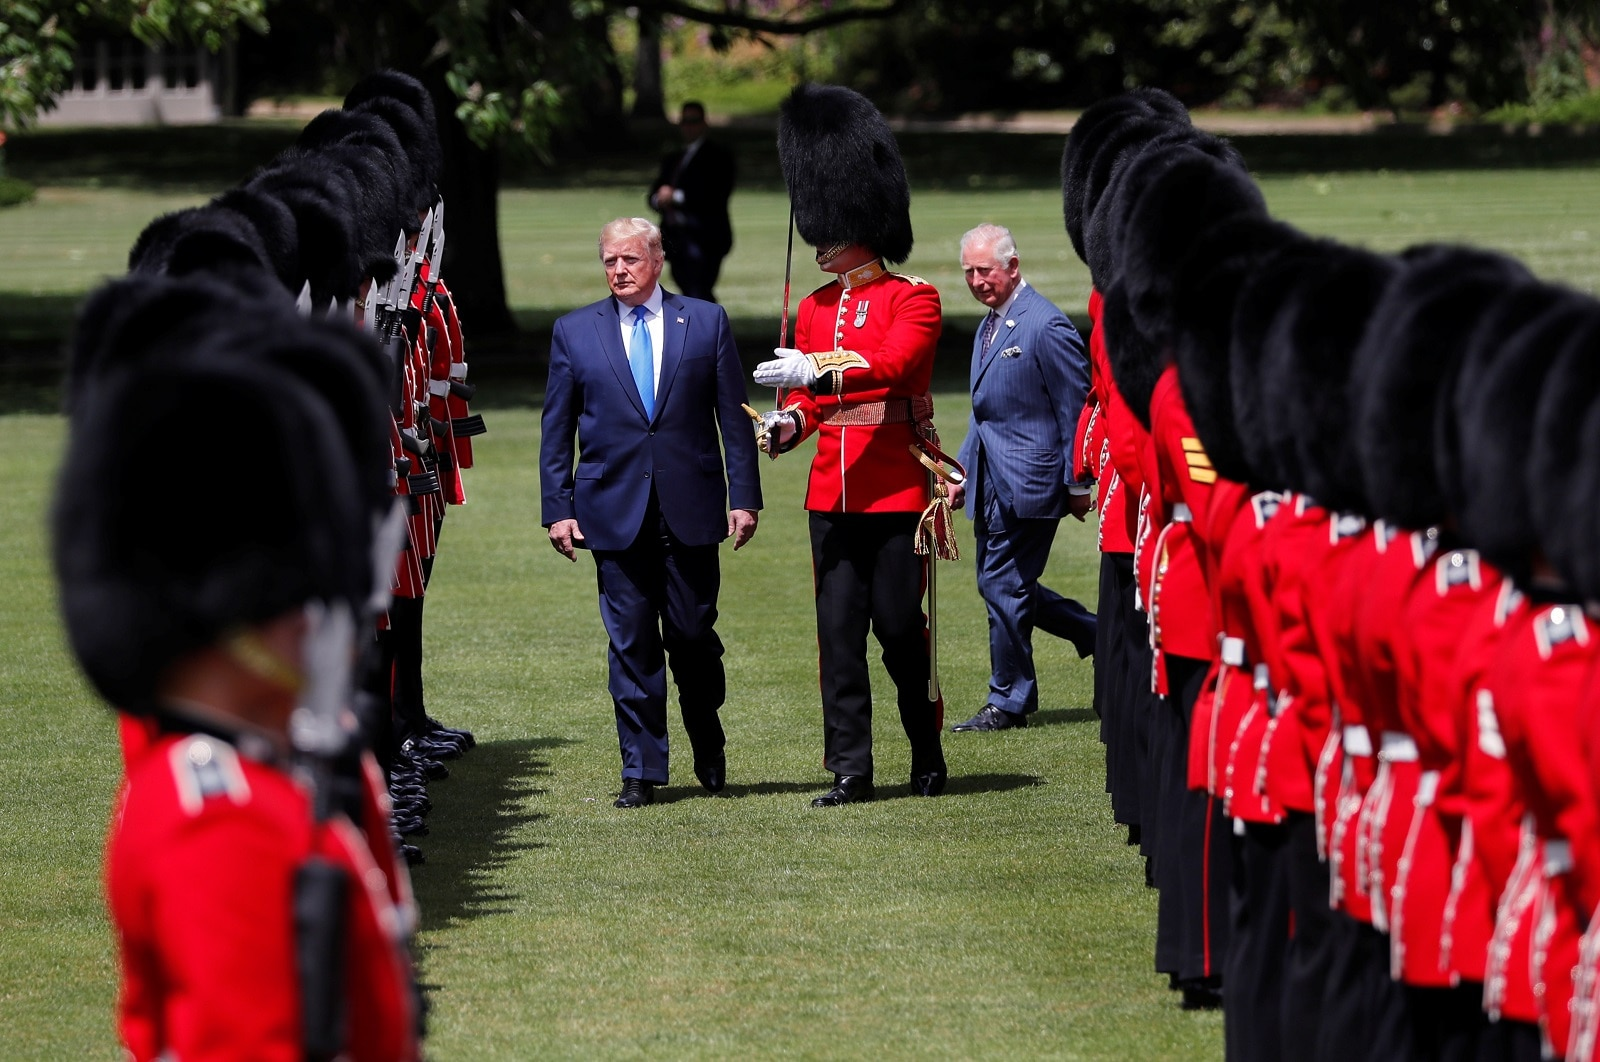 US President Donald Trump inspects an honour guard during a welcome ceremony in Buckingham Palace, in London, Britain, June 3, 2019. REUTERS/Carlos Barria